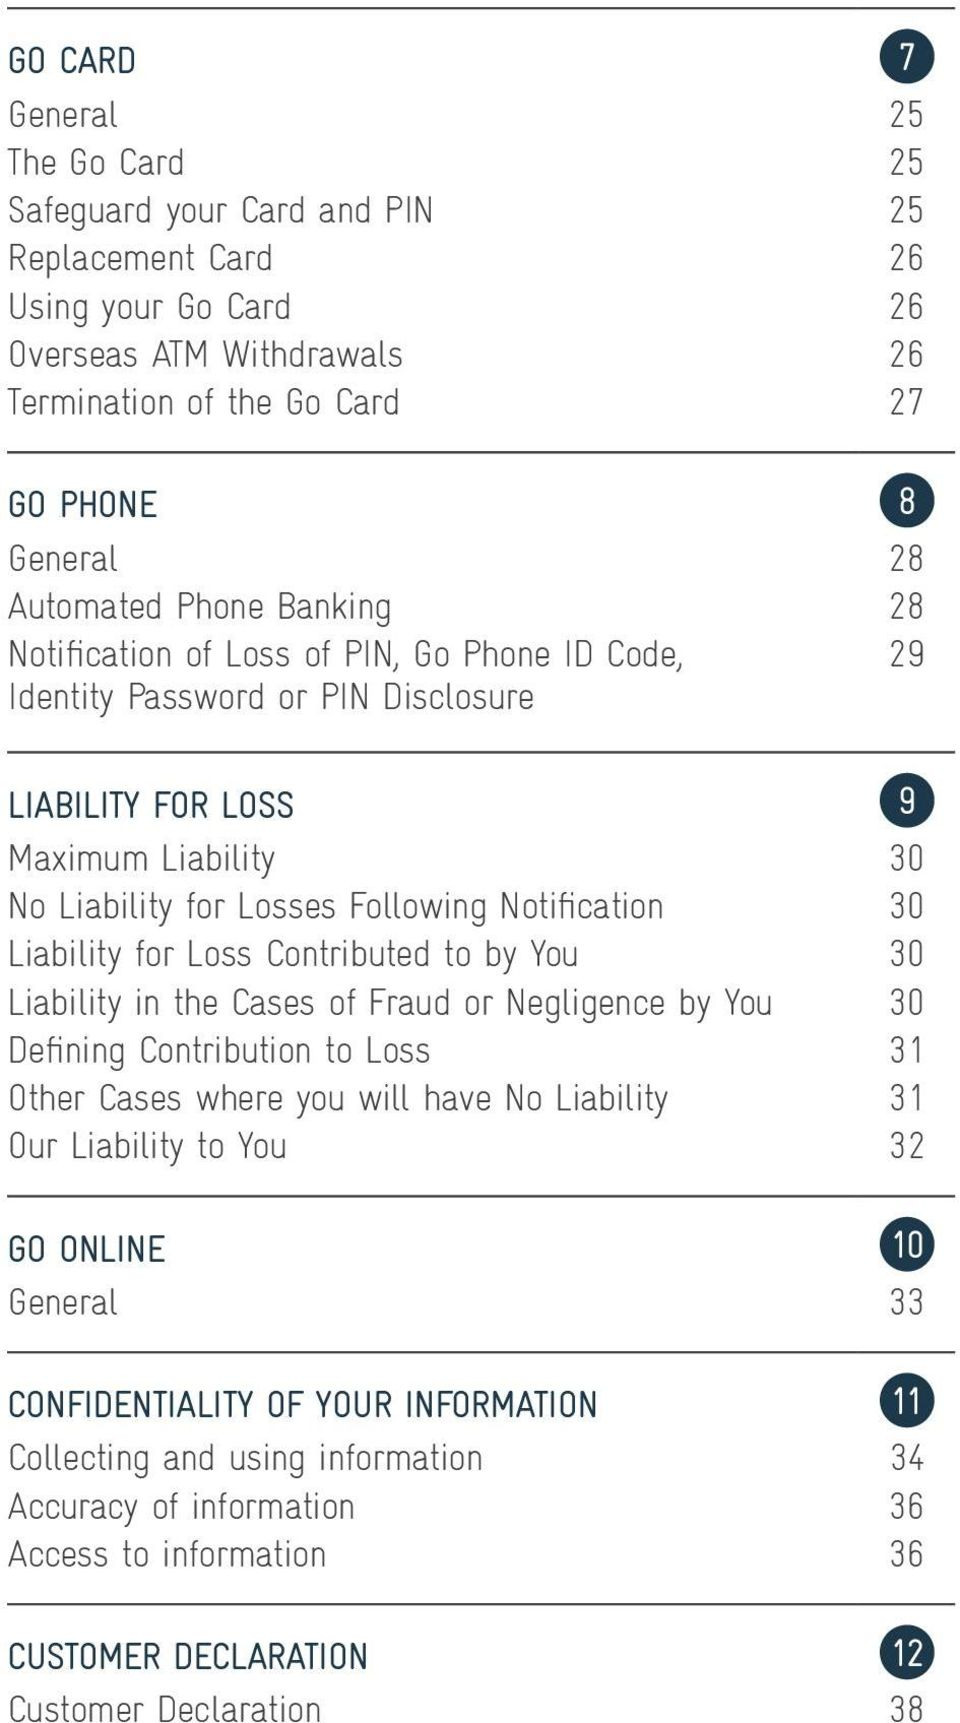 Liability for Loss Contributed to by You 30 Liability in the Cases of Fraud or Negligence by You 30 Defining Contribution to Loss 31 Other Cases where you will have No Liability 31 Our Liability to